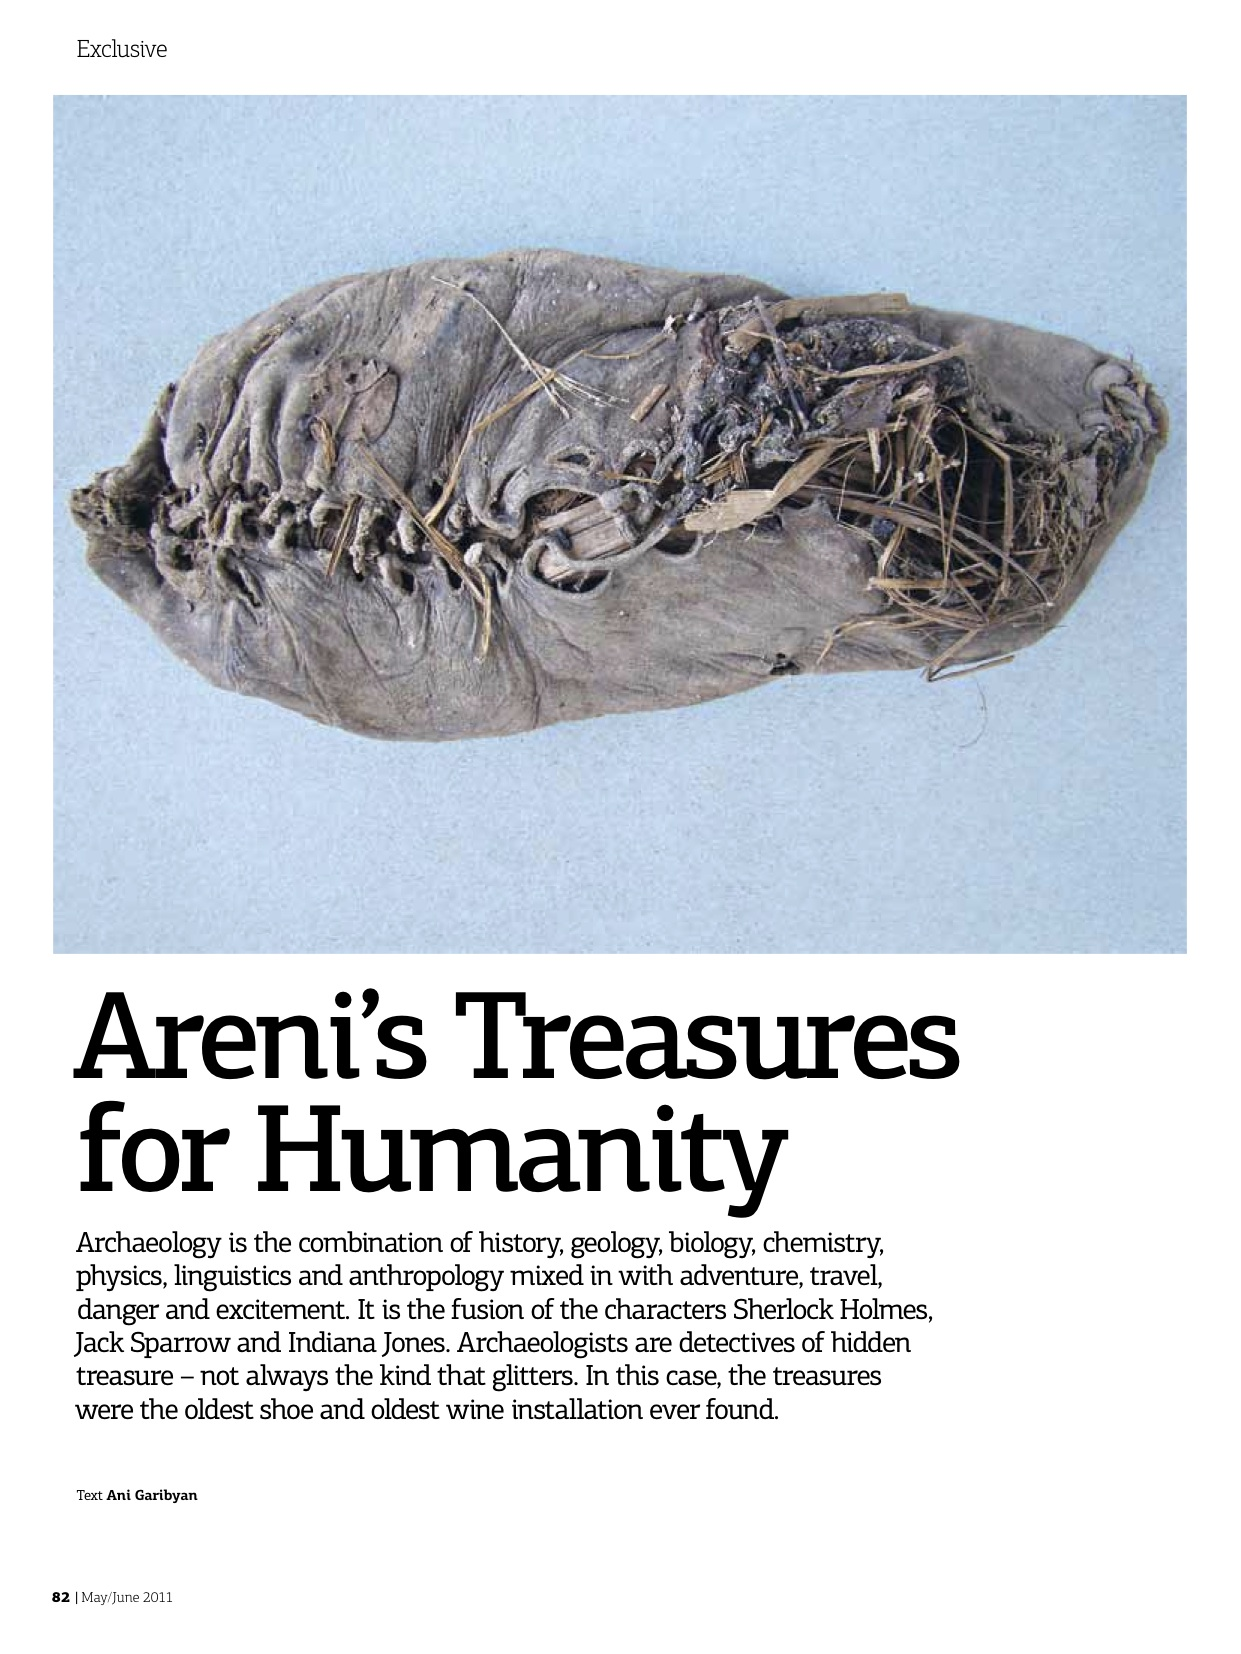 Areni's Treasures for Humanity    Dig deeper into the ancient world of wine, shoesand historic rituals with Dr. Gregory Areshian ofthe Cotsen Institute of Archaeology at UCLA